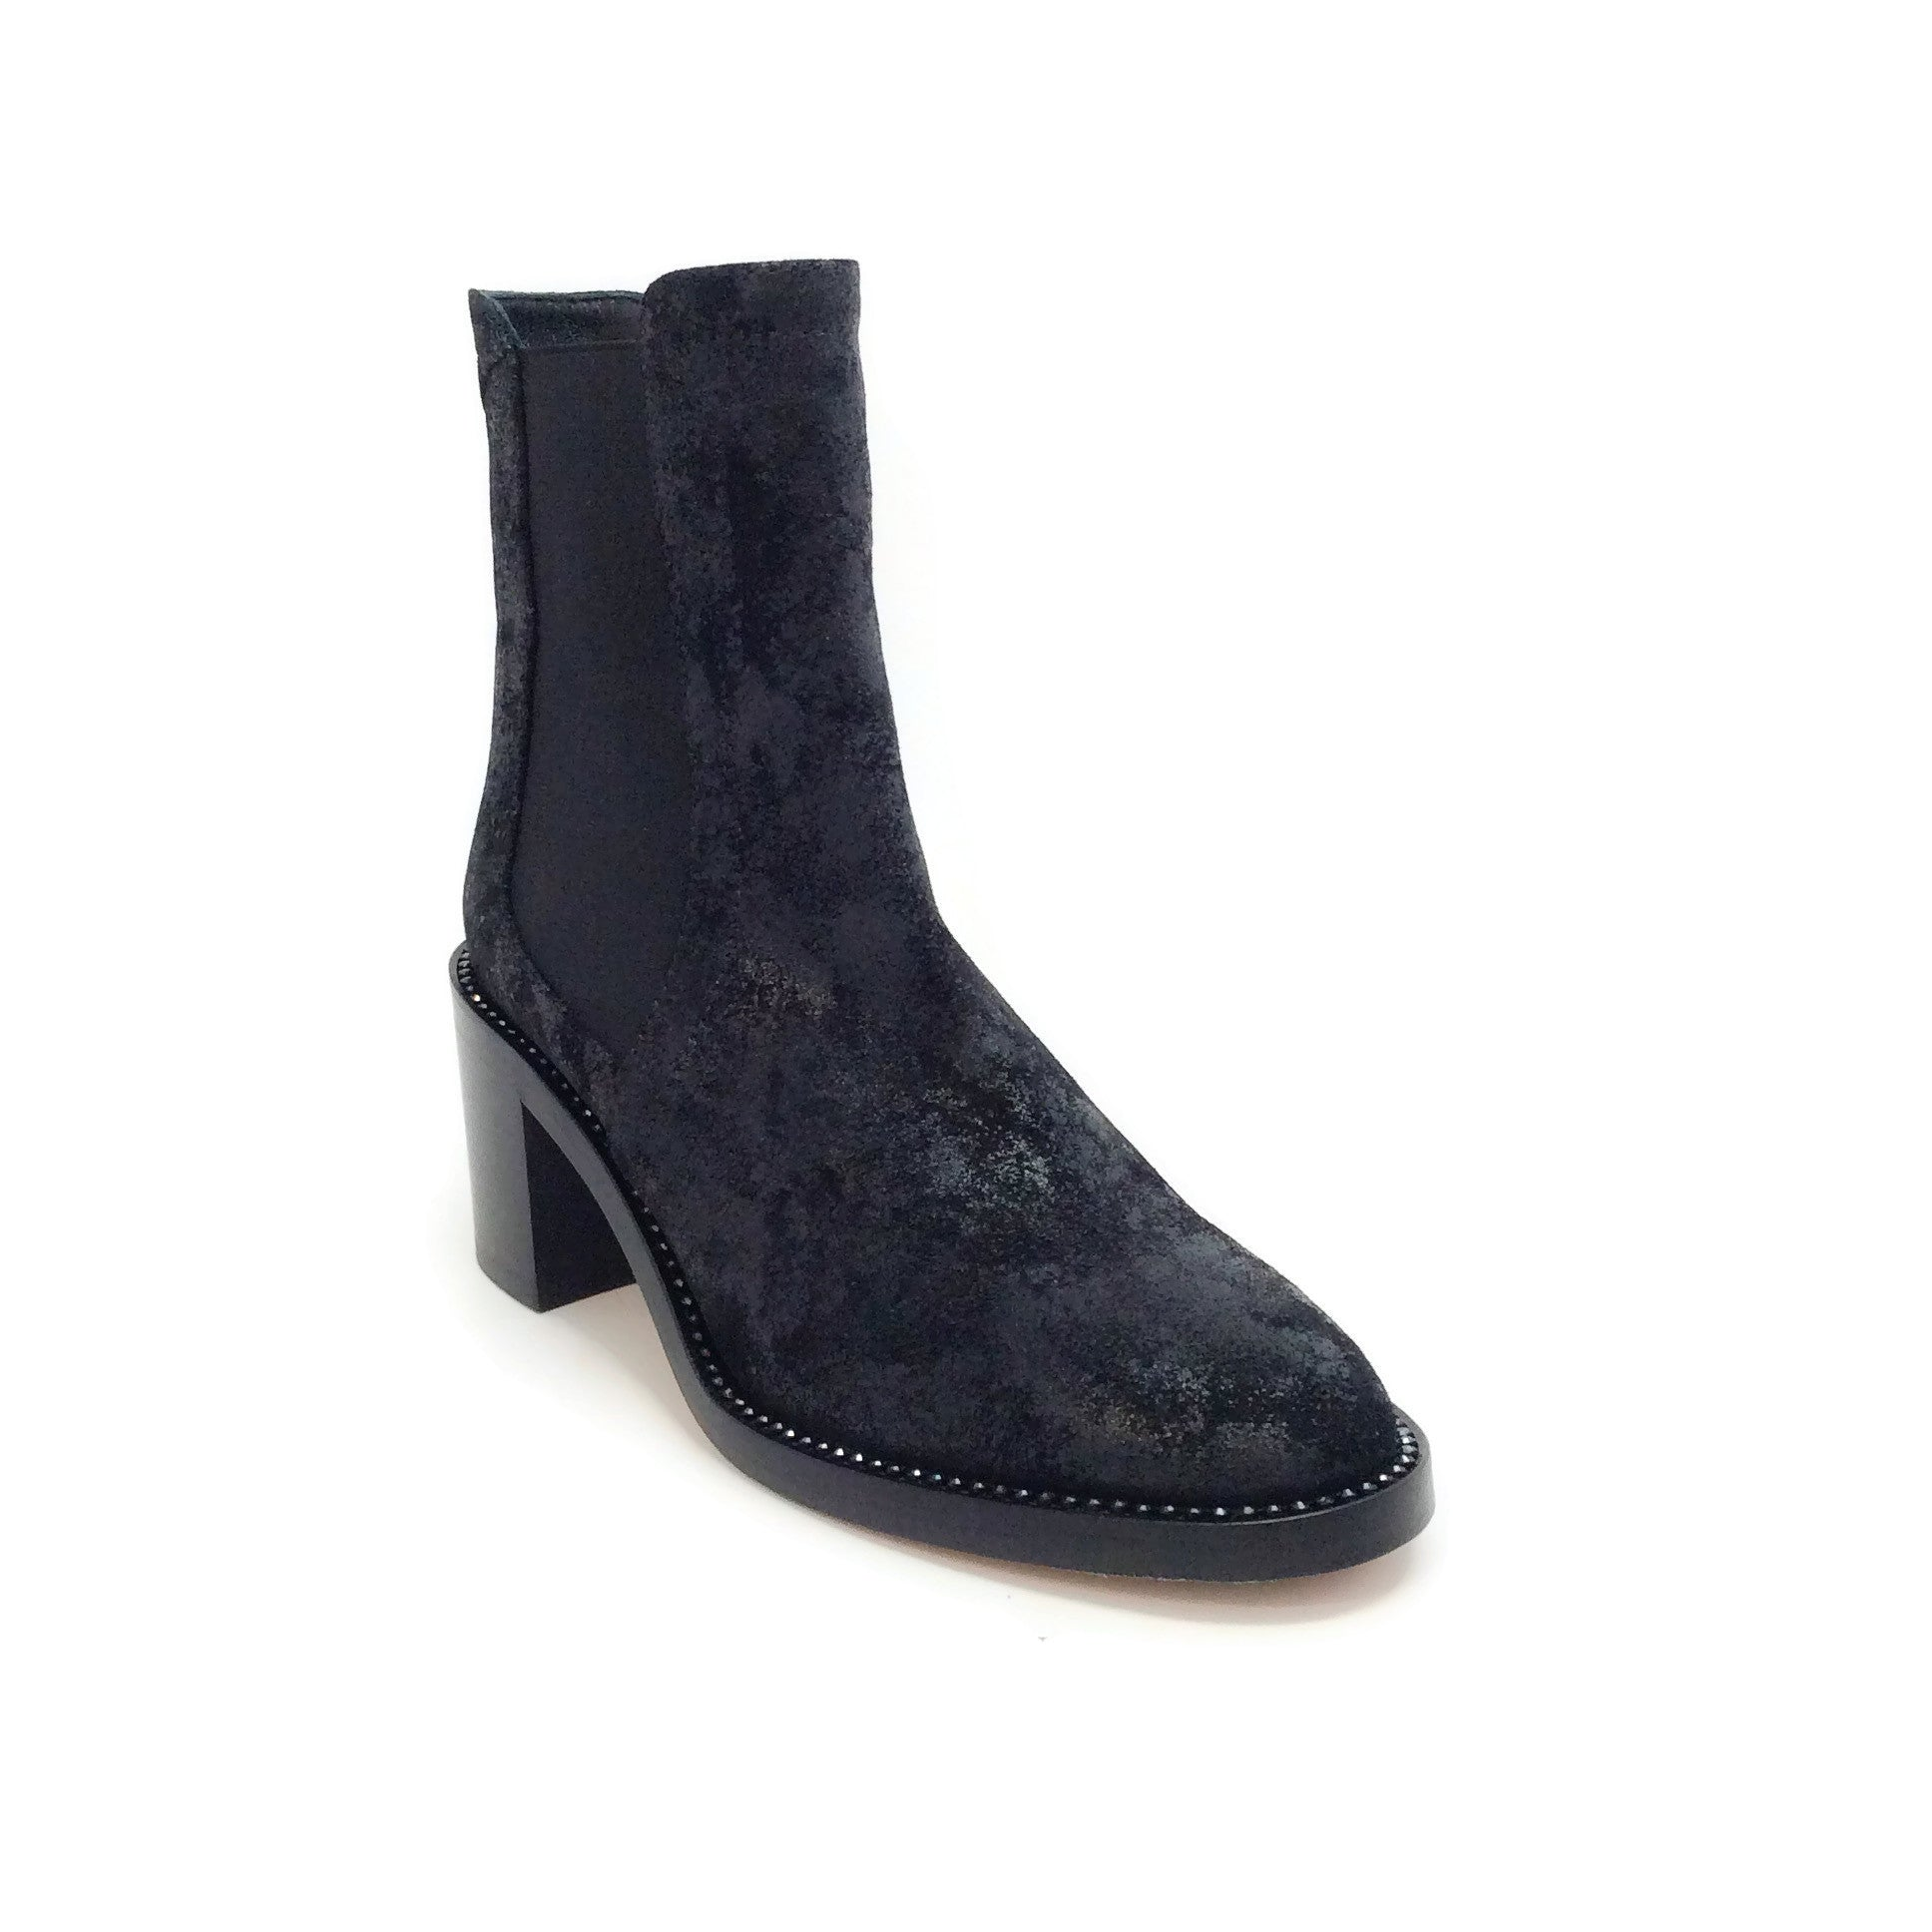 Jimmy Choo Black Suede Wetlook Merril Boots